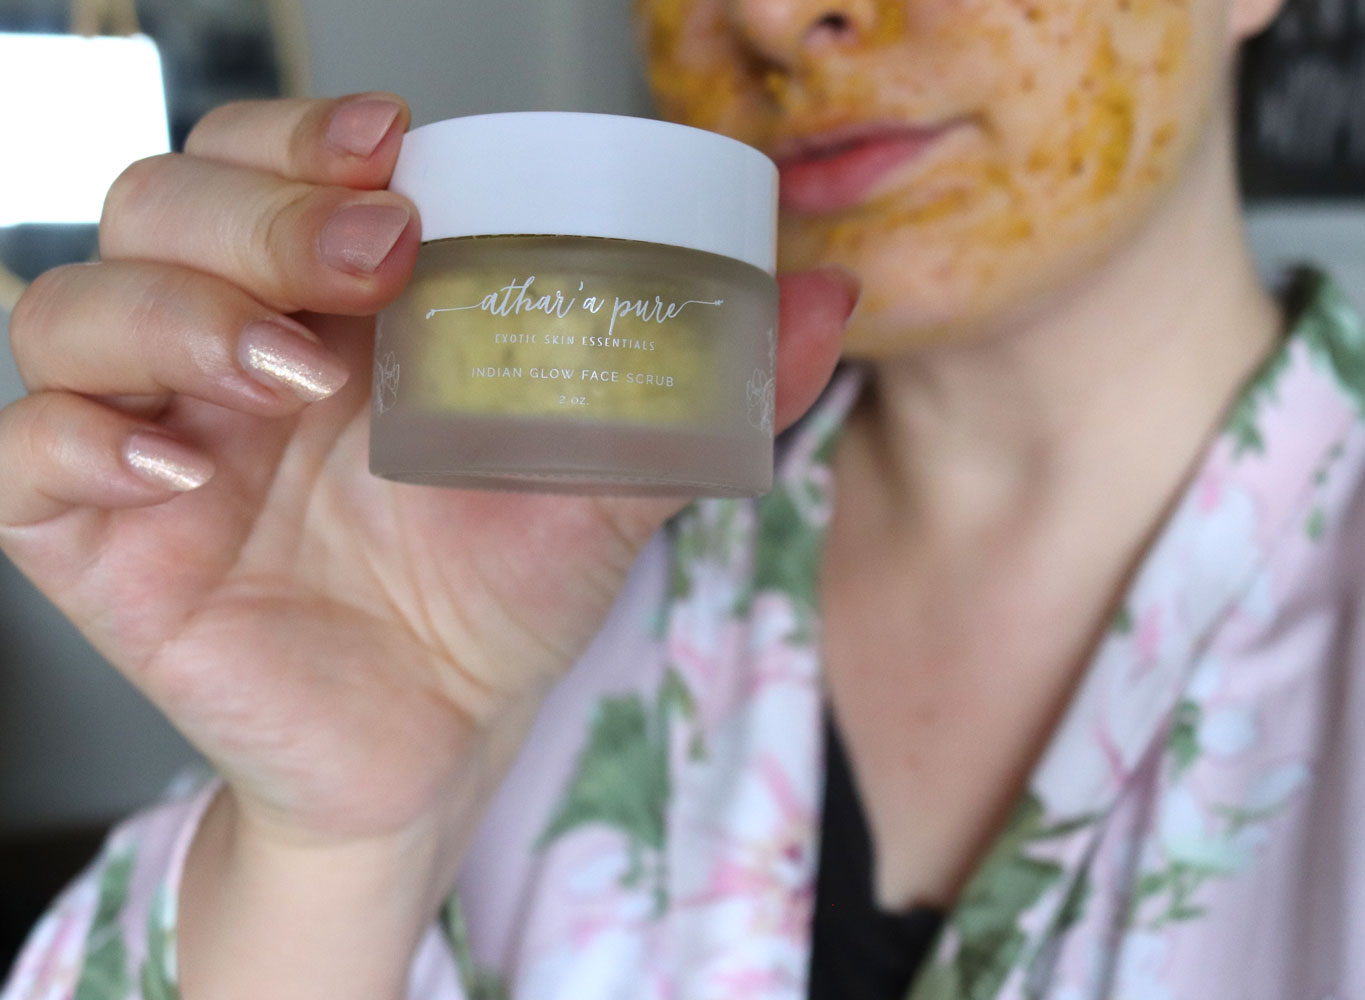 Smooth Skin with Athar'a Pure Indian Glow Face Scrub